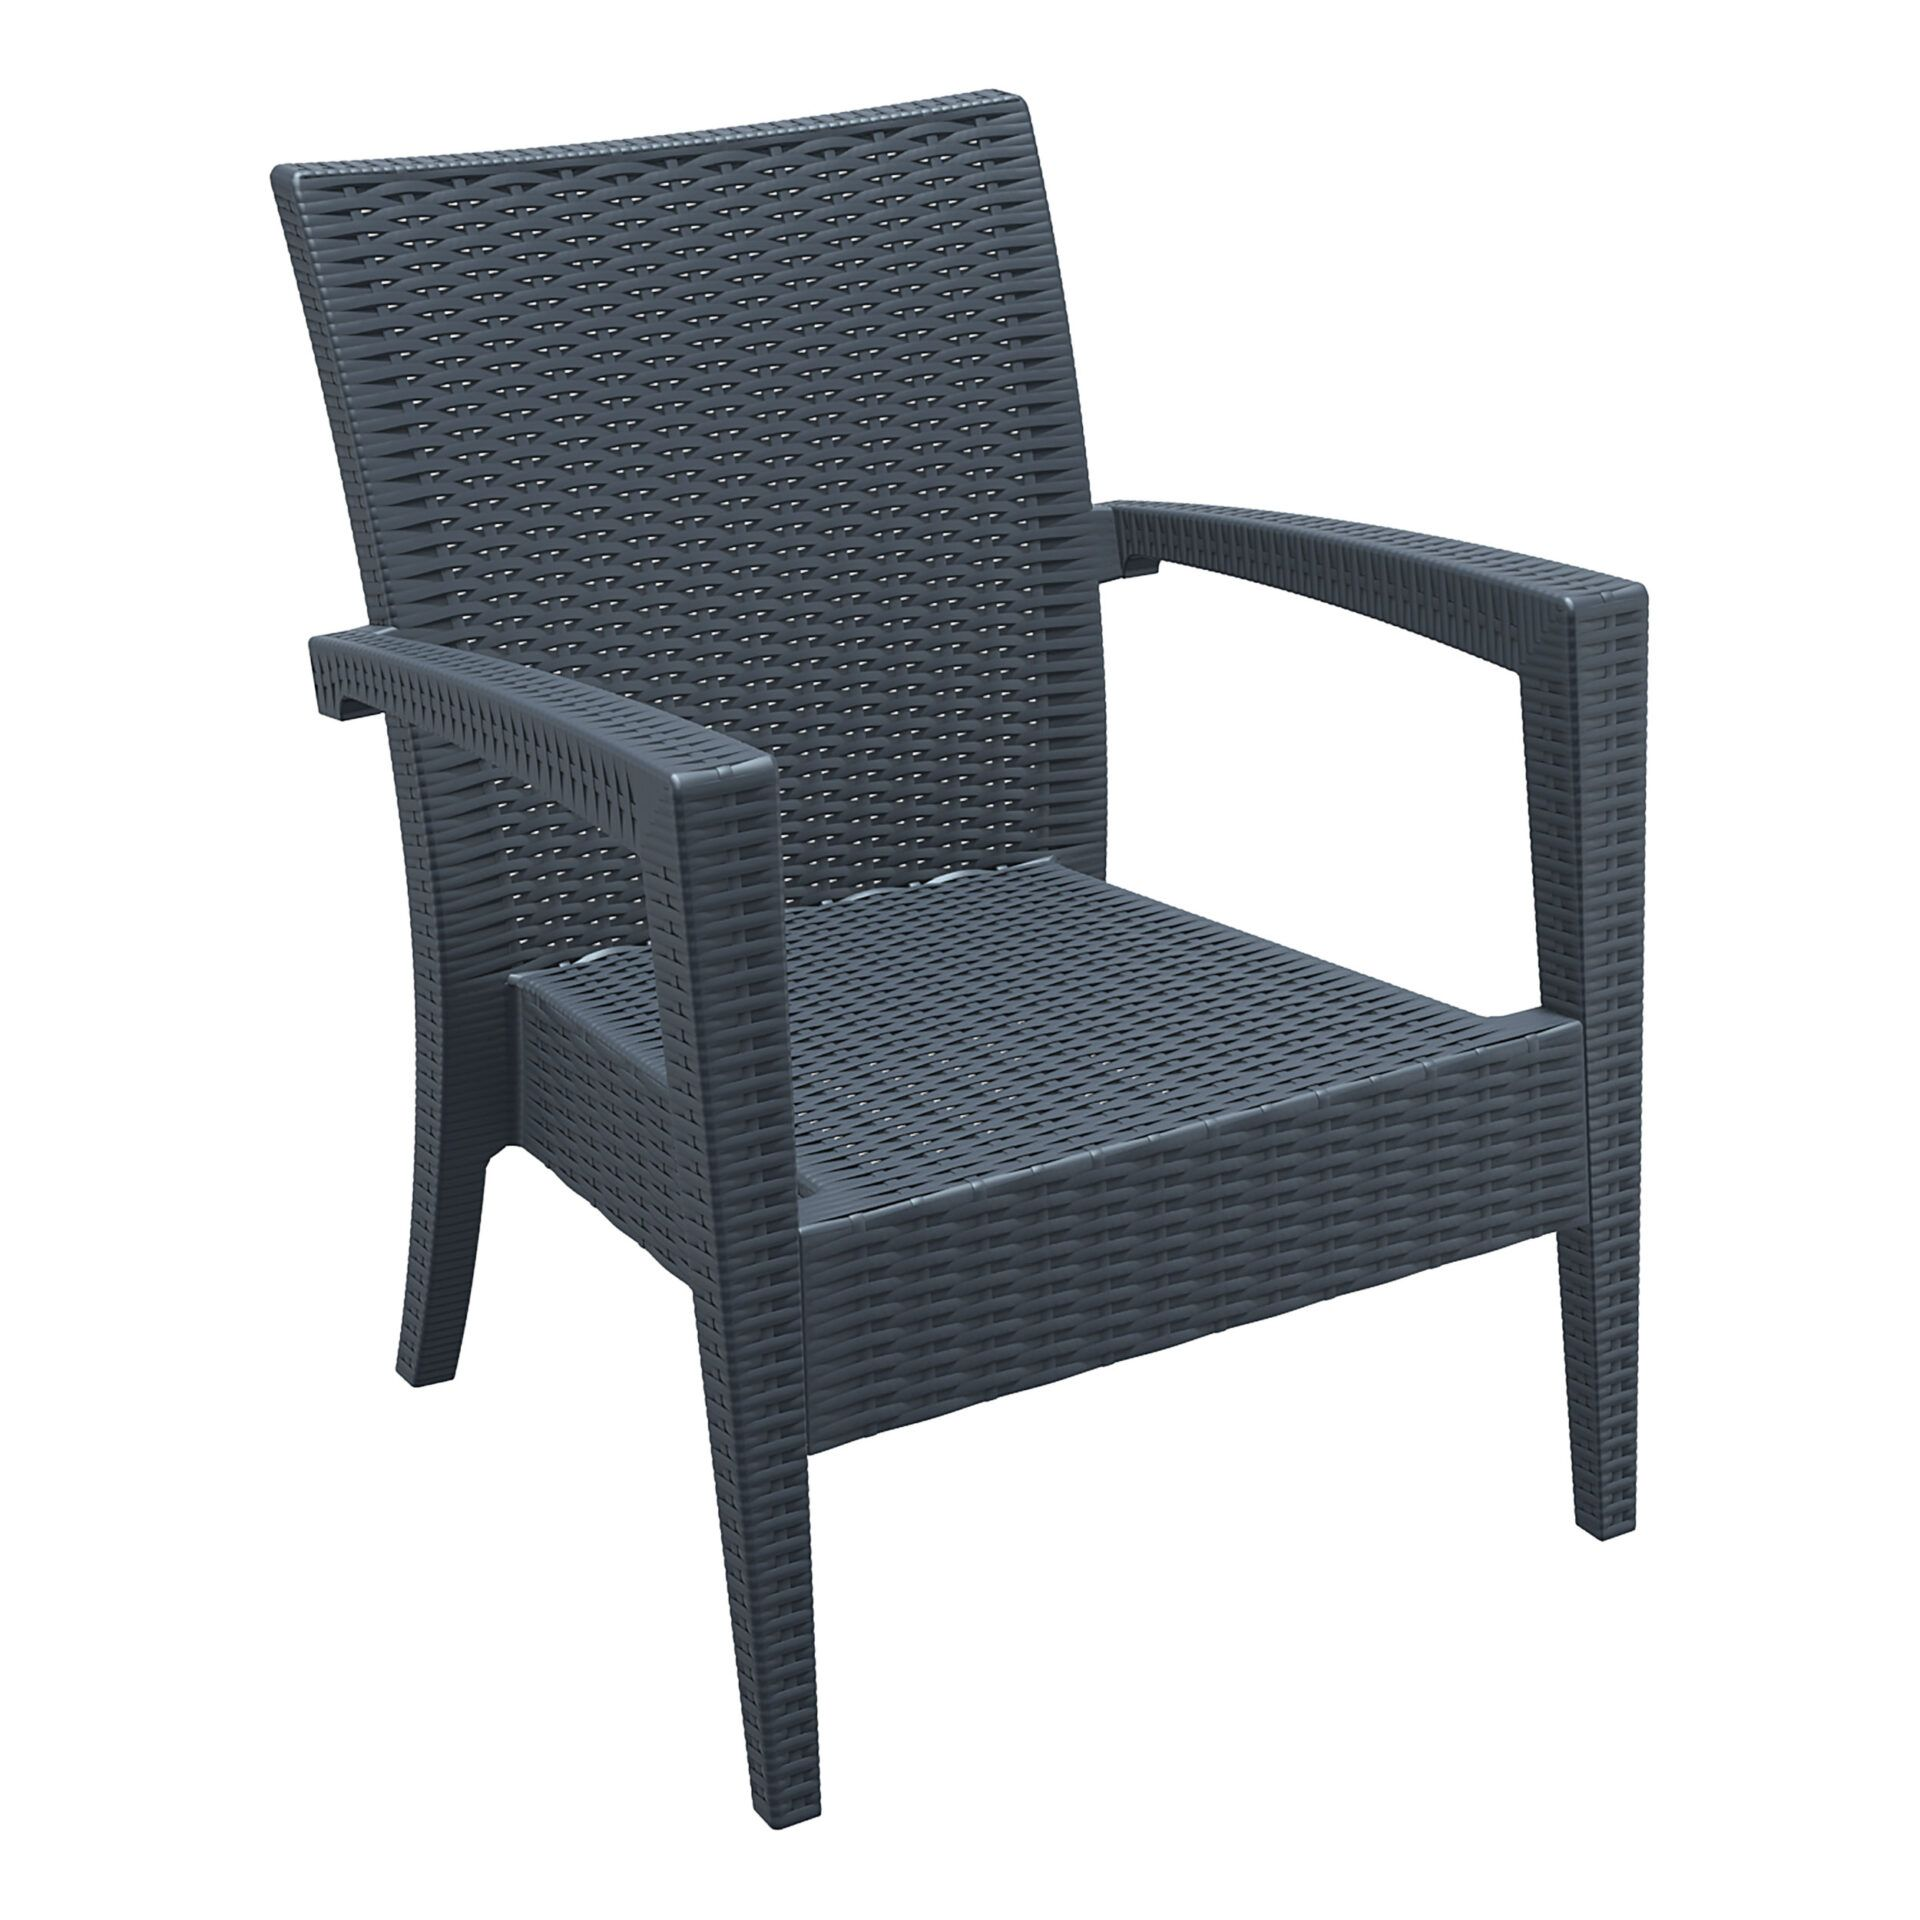 resin rattan miami tequila lounge armchair darkgrey front side